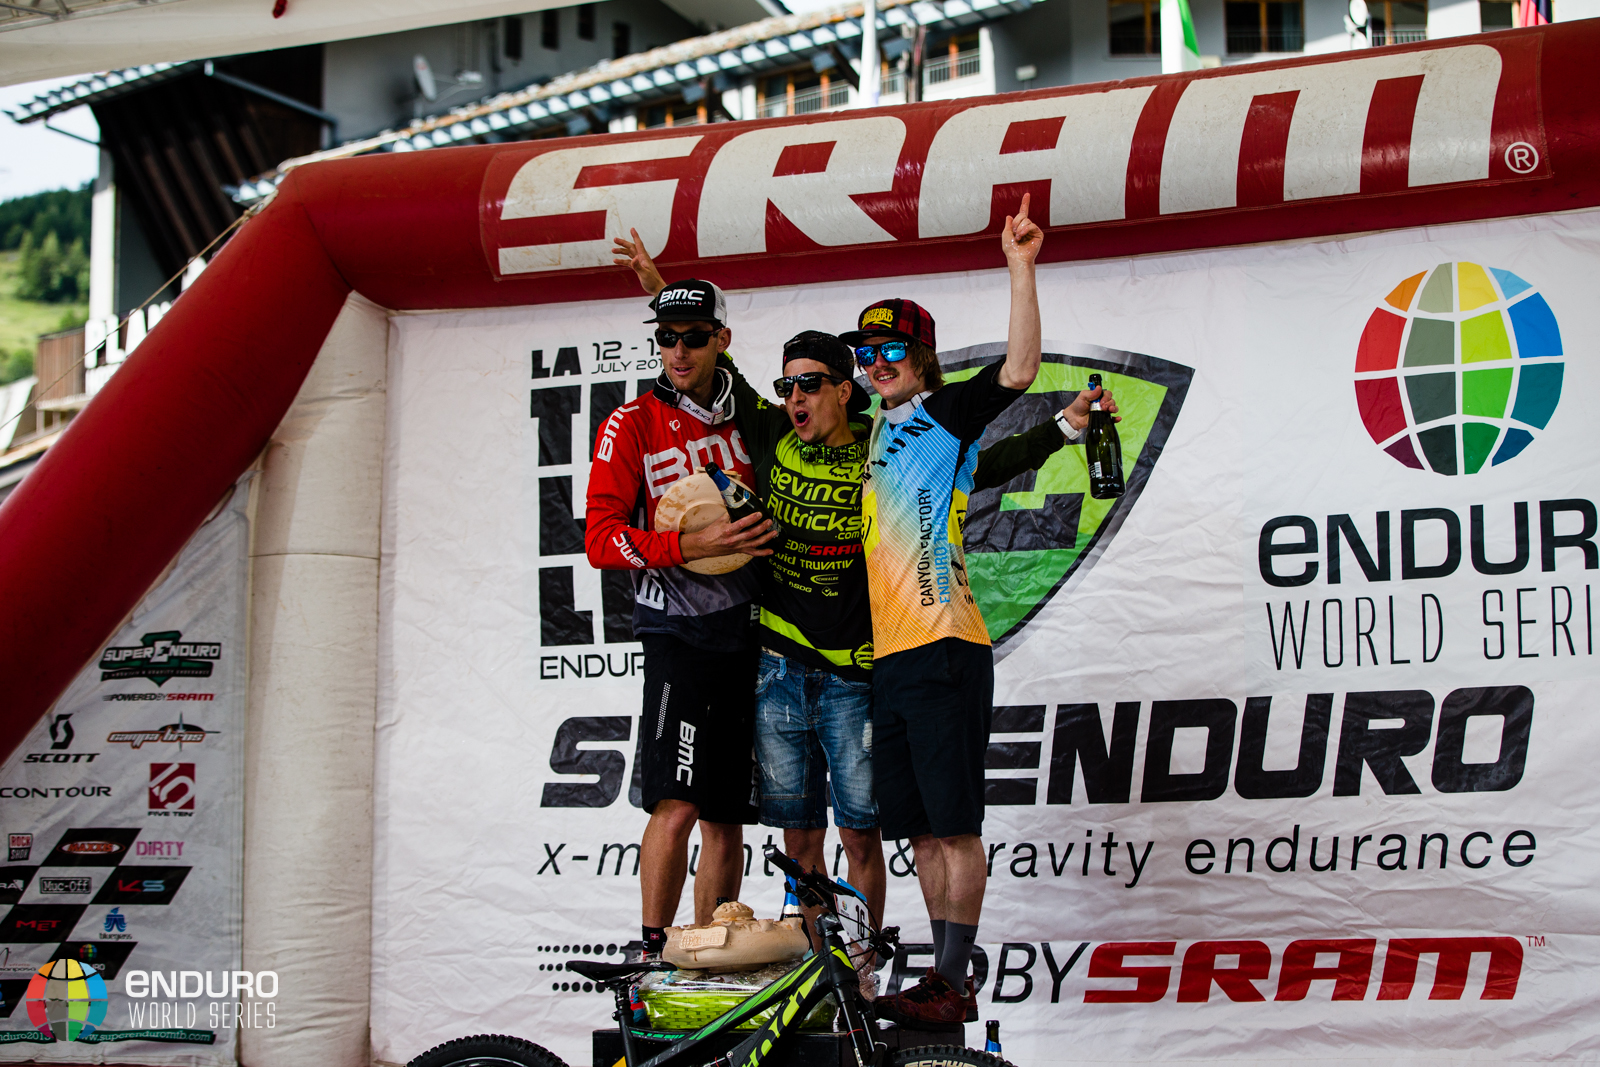 Mens podium. 4 2014, La Thuile. Photo by Matt Wragg.